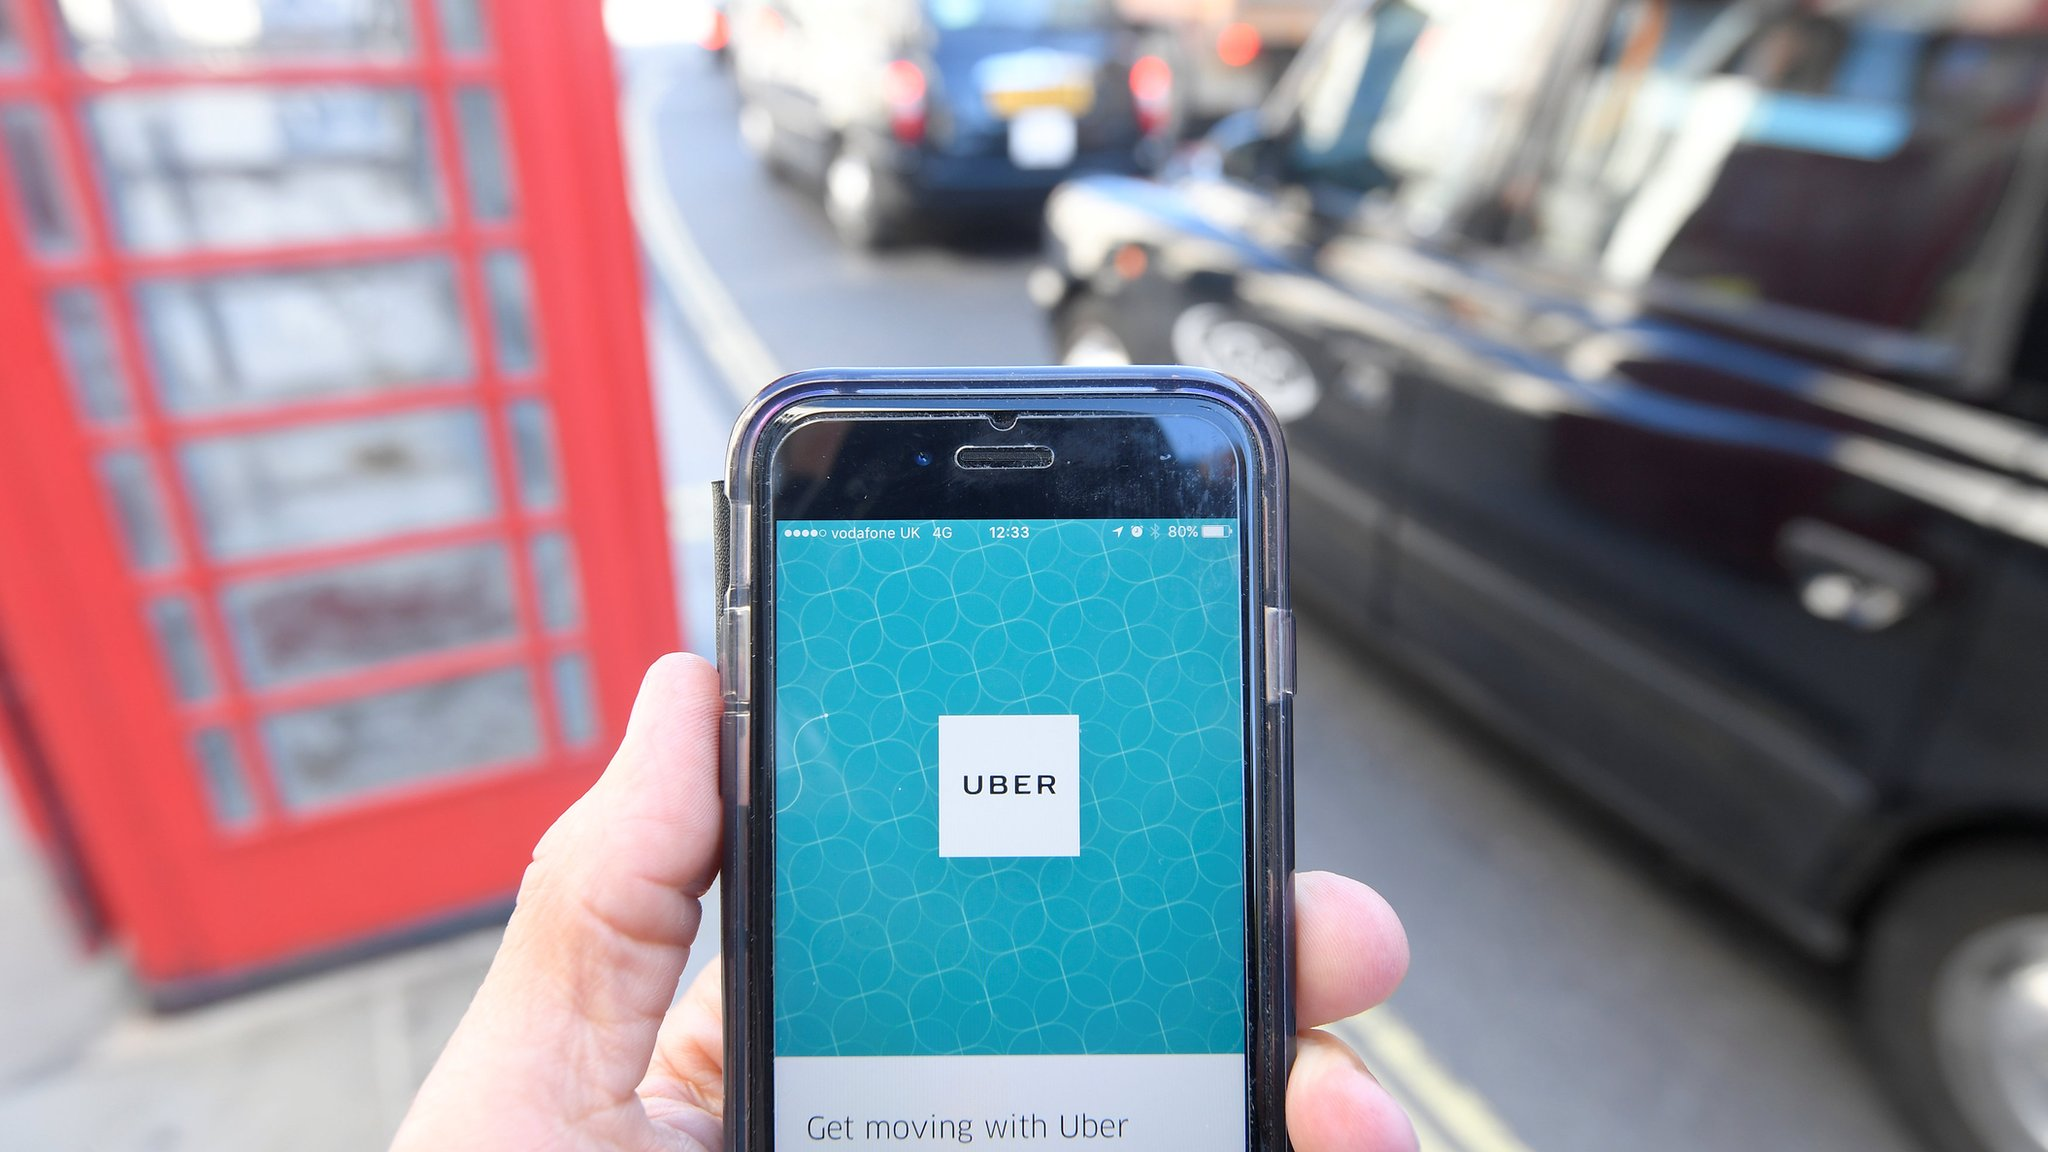 Uber seeks talks with London mayor to renew licence